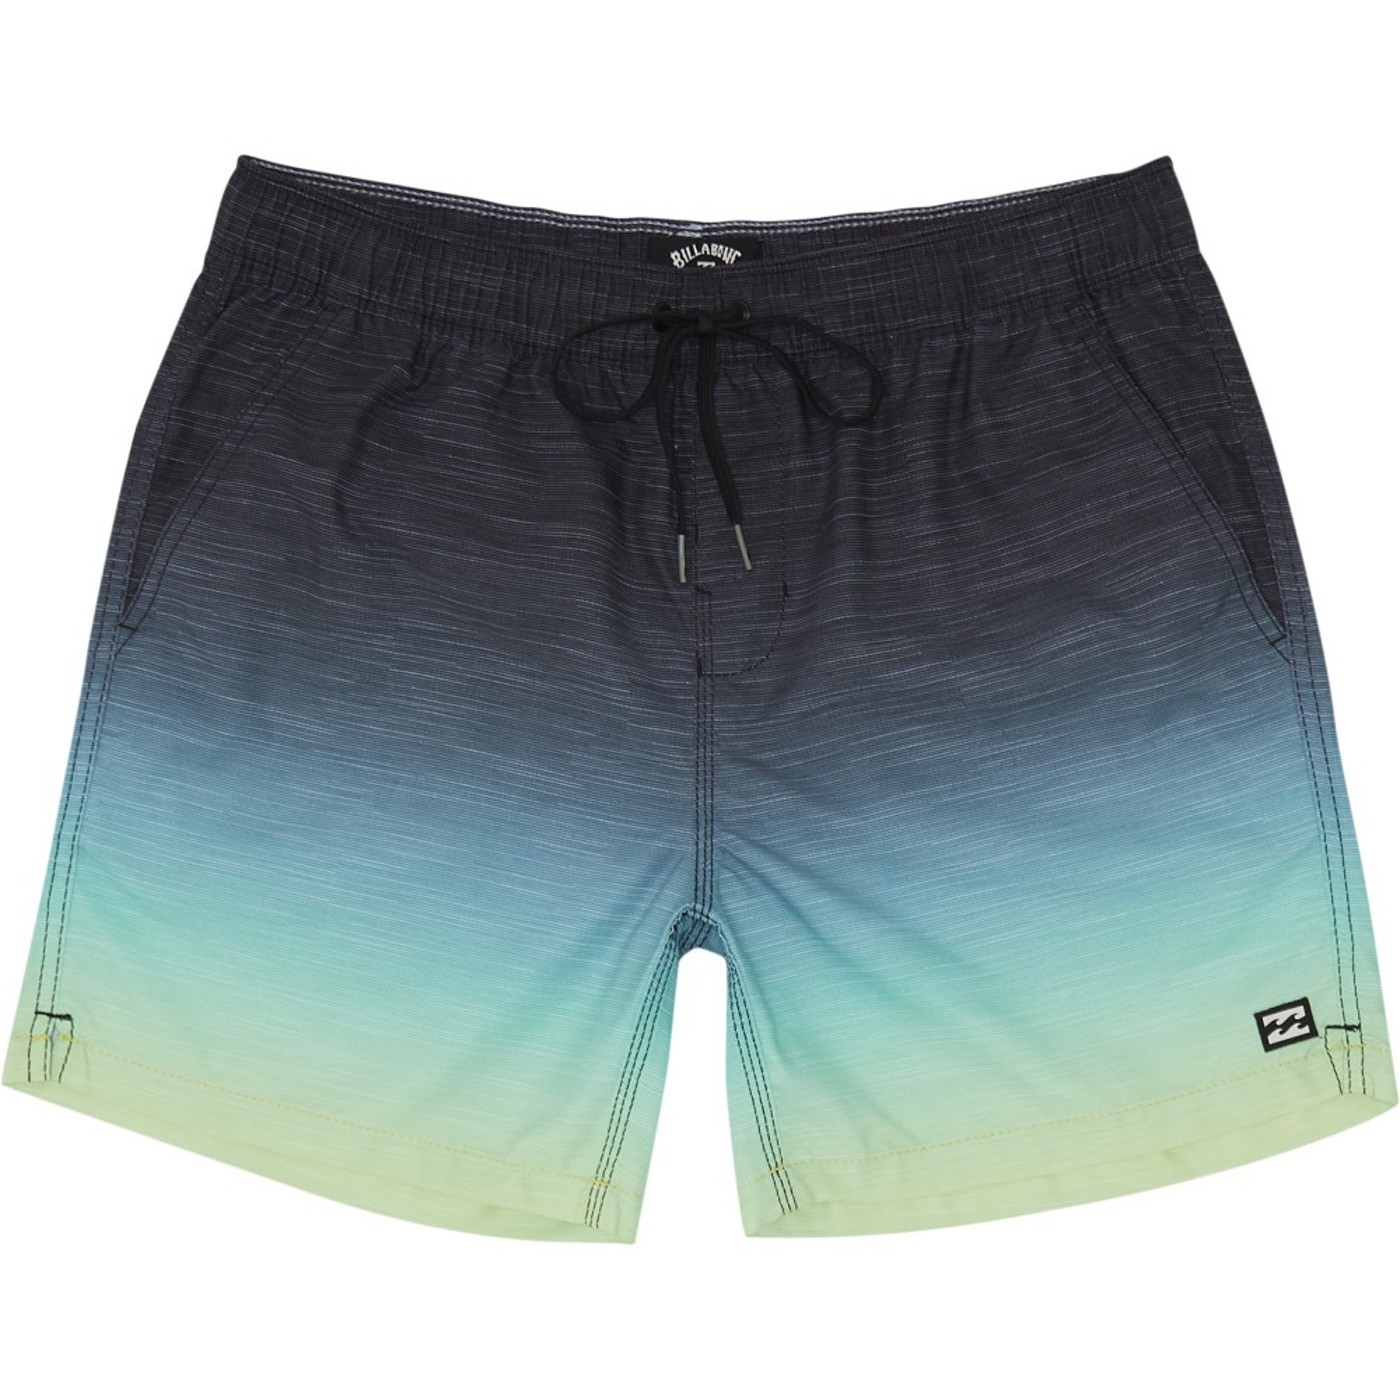 BILLABONG ALL DAY FADED LB - Herren